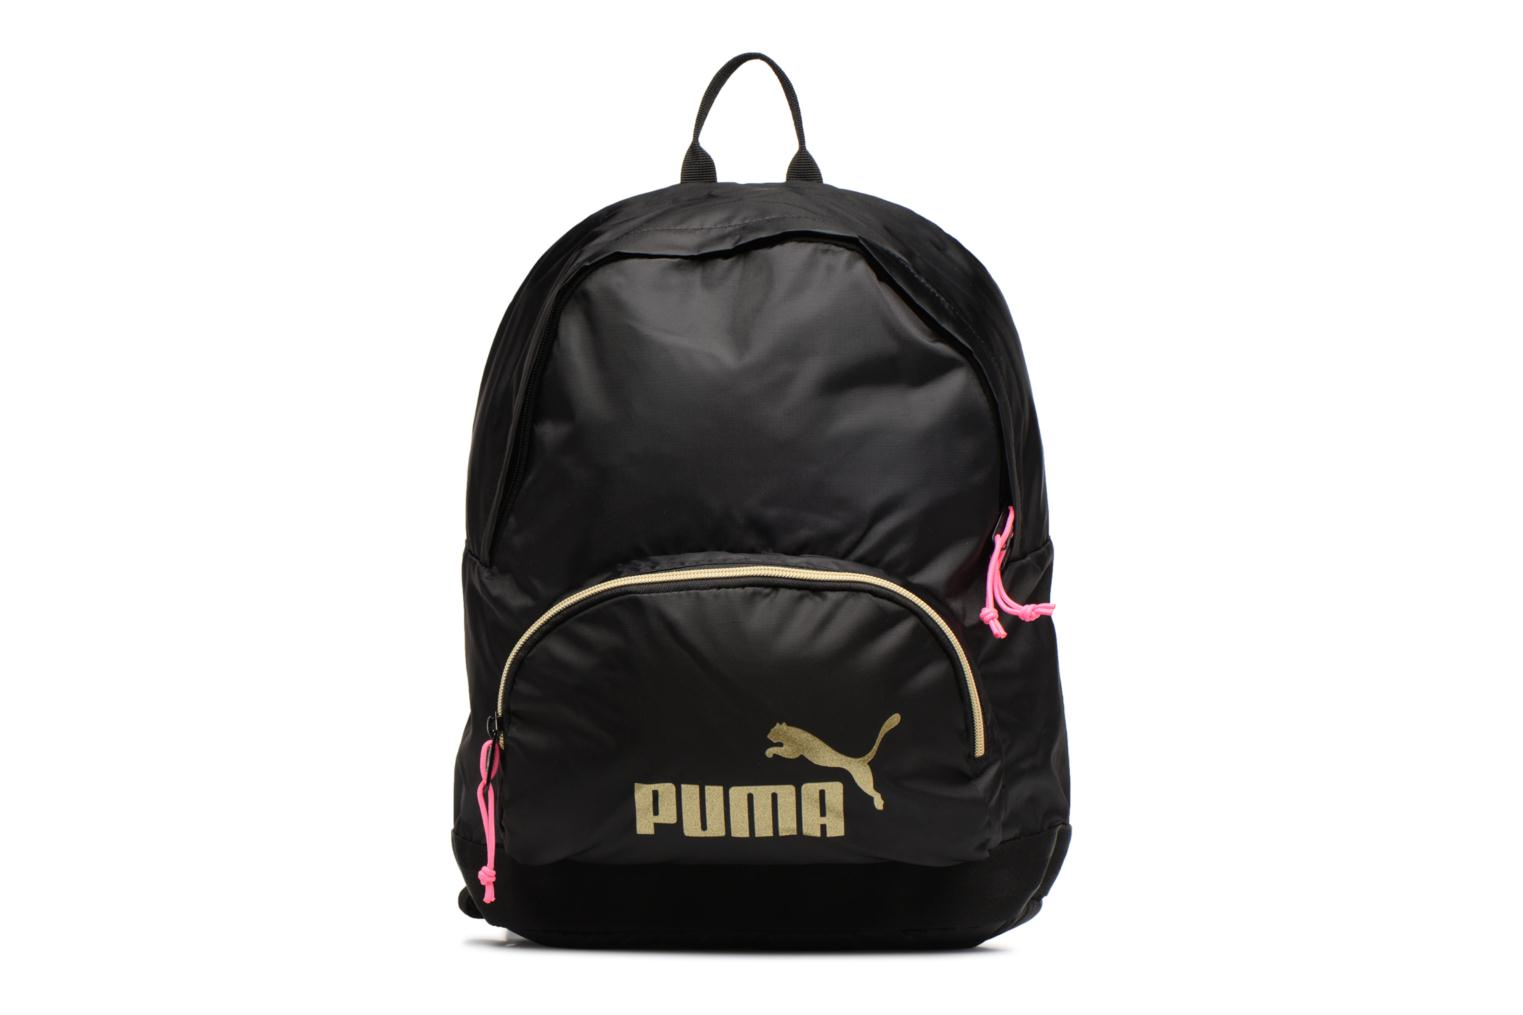 Puma WMN SEA CORE GOLD BP BLK 6ZF6pBn